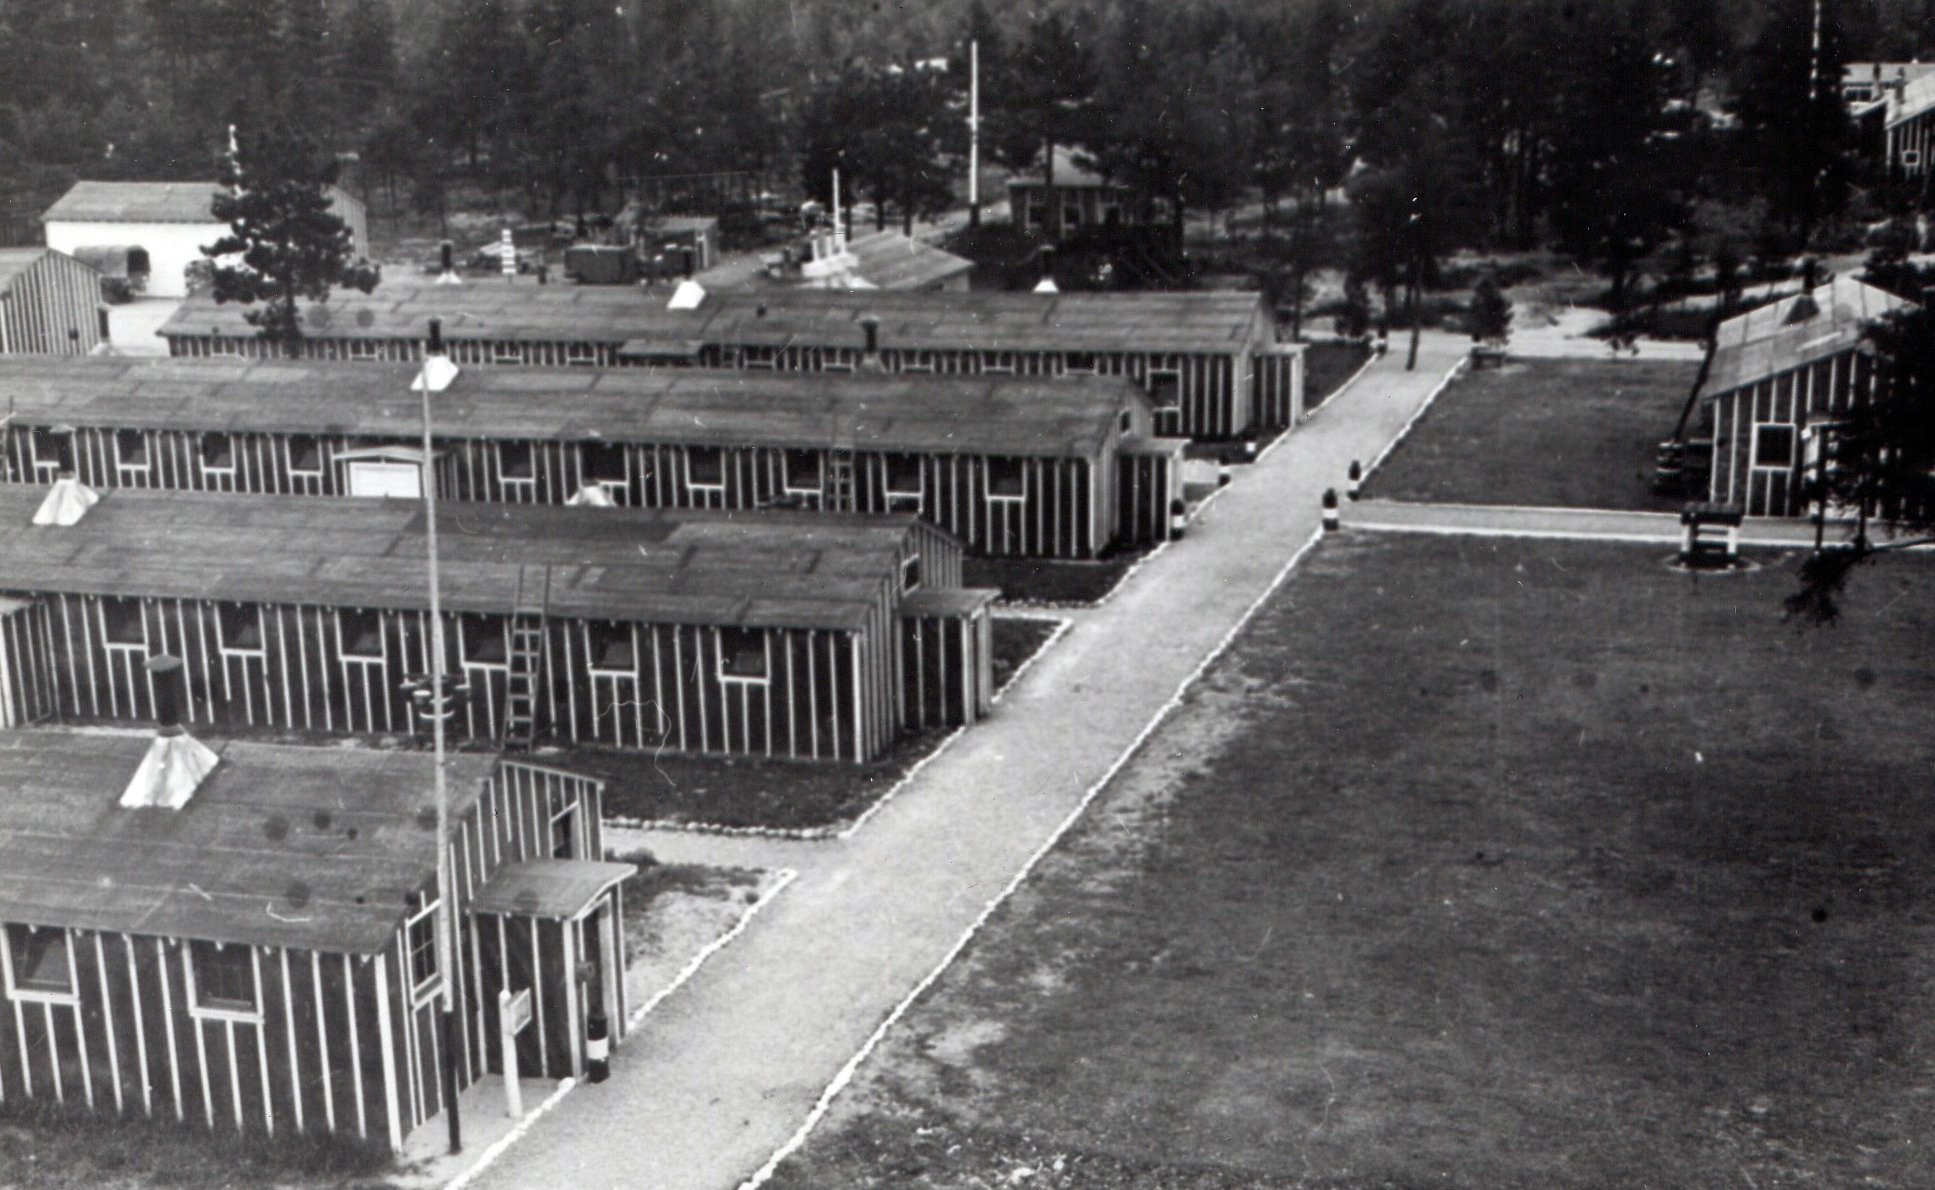 A view of Camp Raco in Chippewa County, the first Civilian Conservation Corps camp established in the Upper Peninsula.